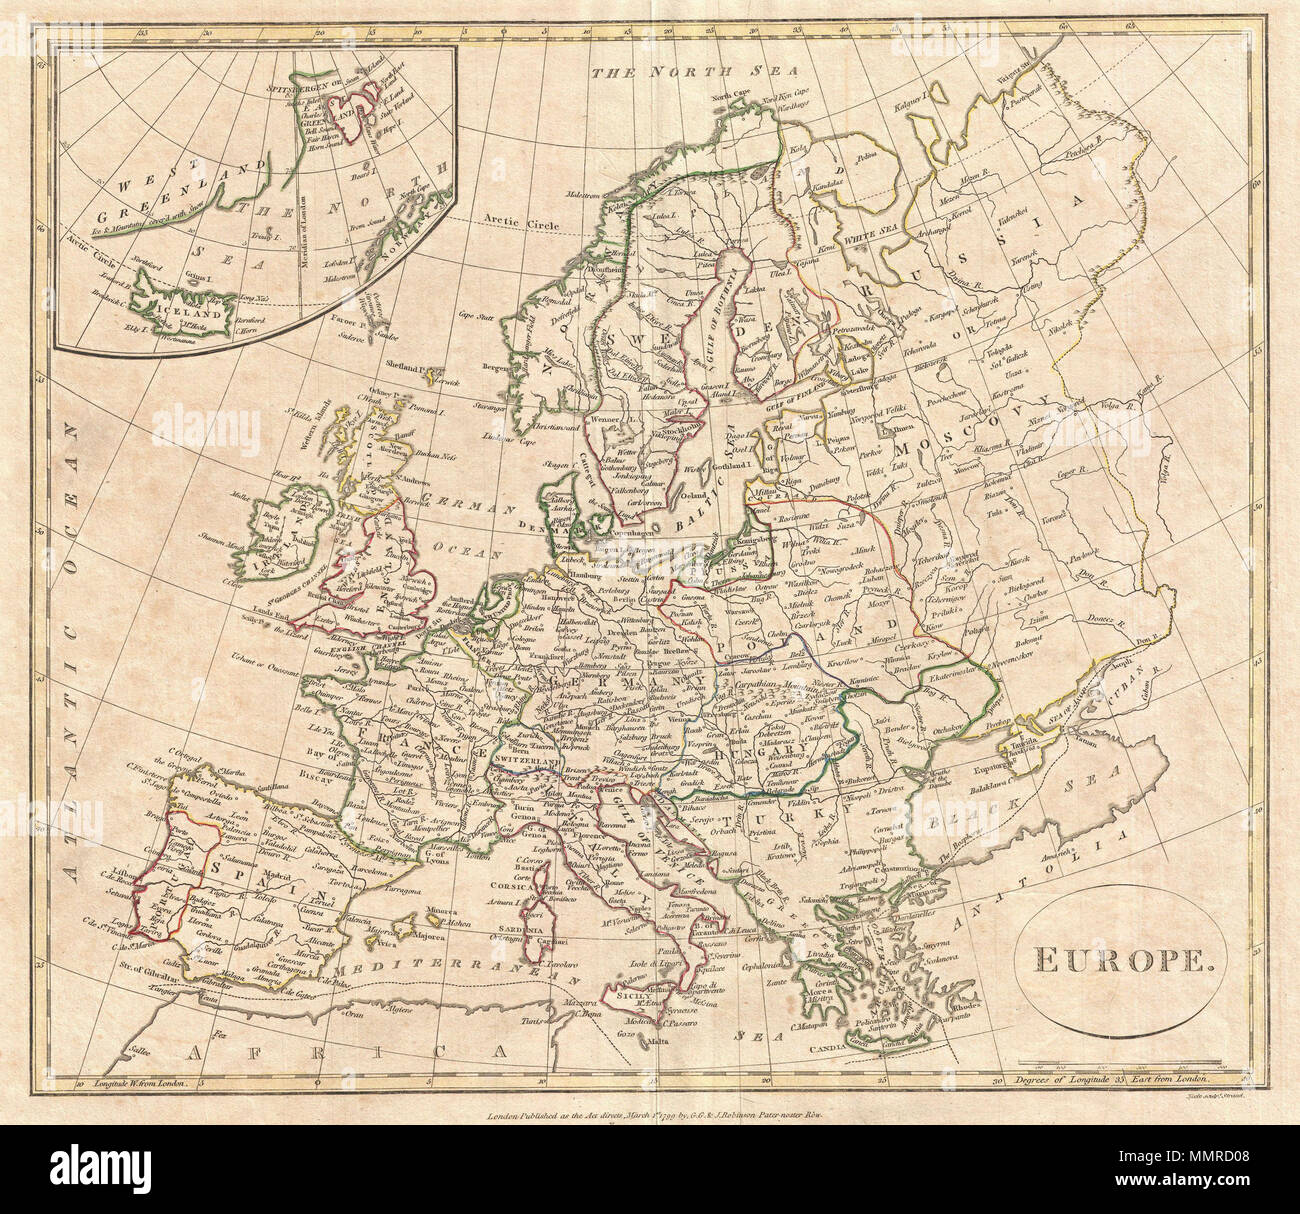 Picture of: English A Fine 1799 Map Of Europe By The English Map Publisher Clement Cruttwell Covers The Entire European Continent Including An Very Confusing Inset Of Greenland Spitsbergen And Iceland Also Includes